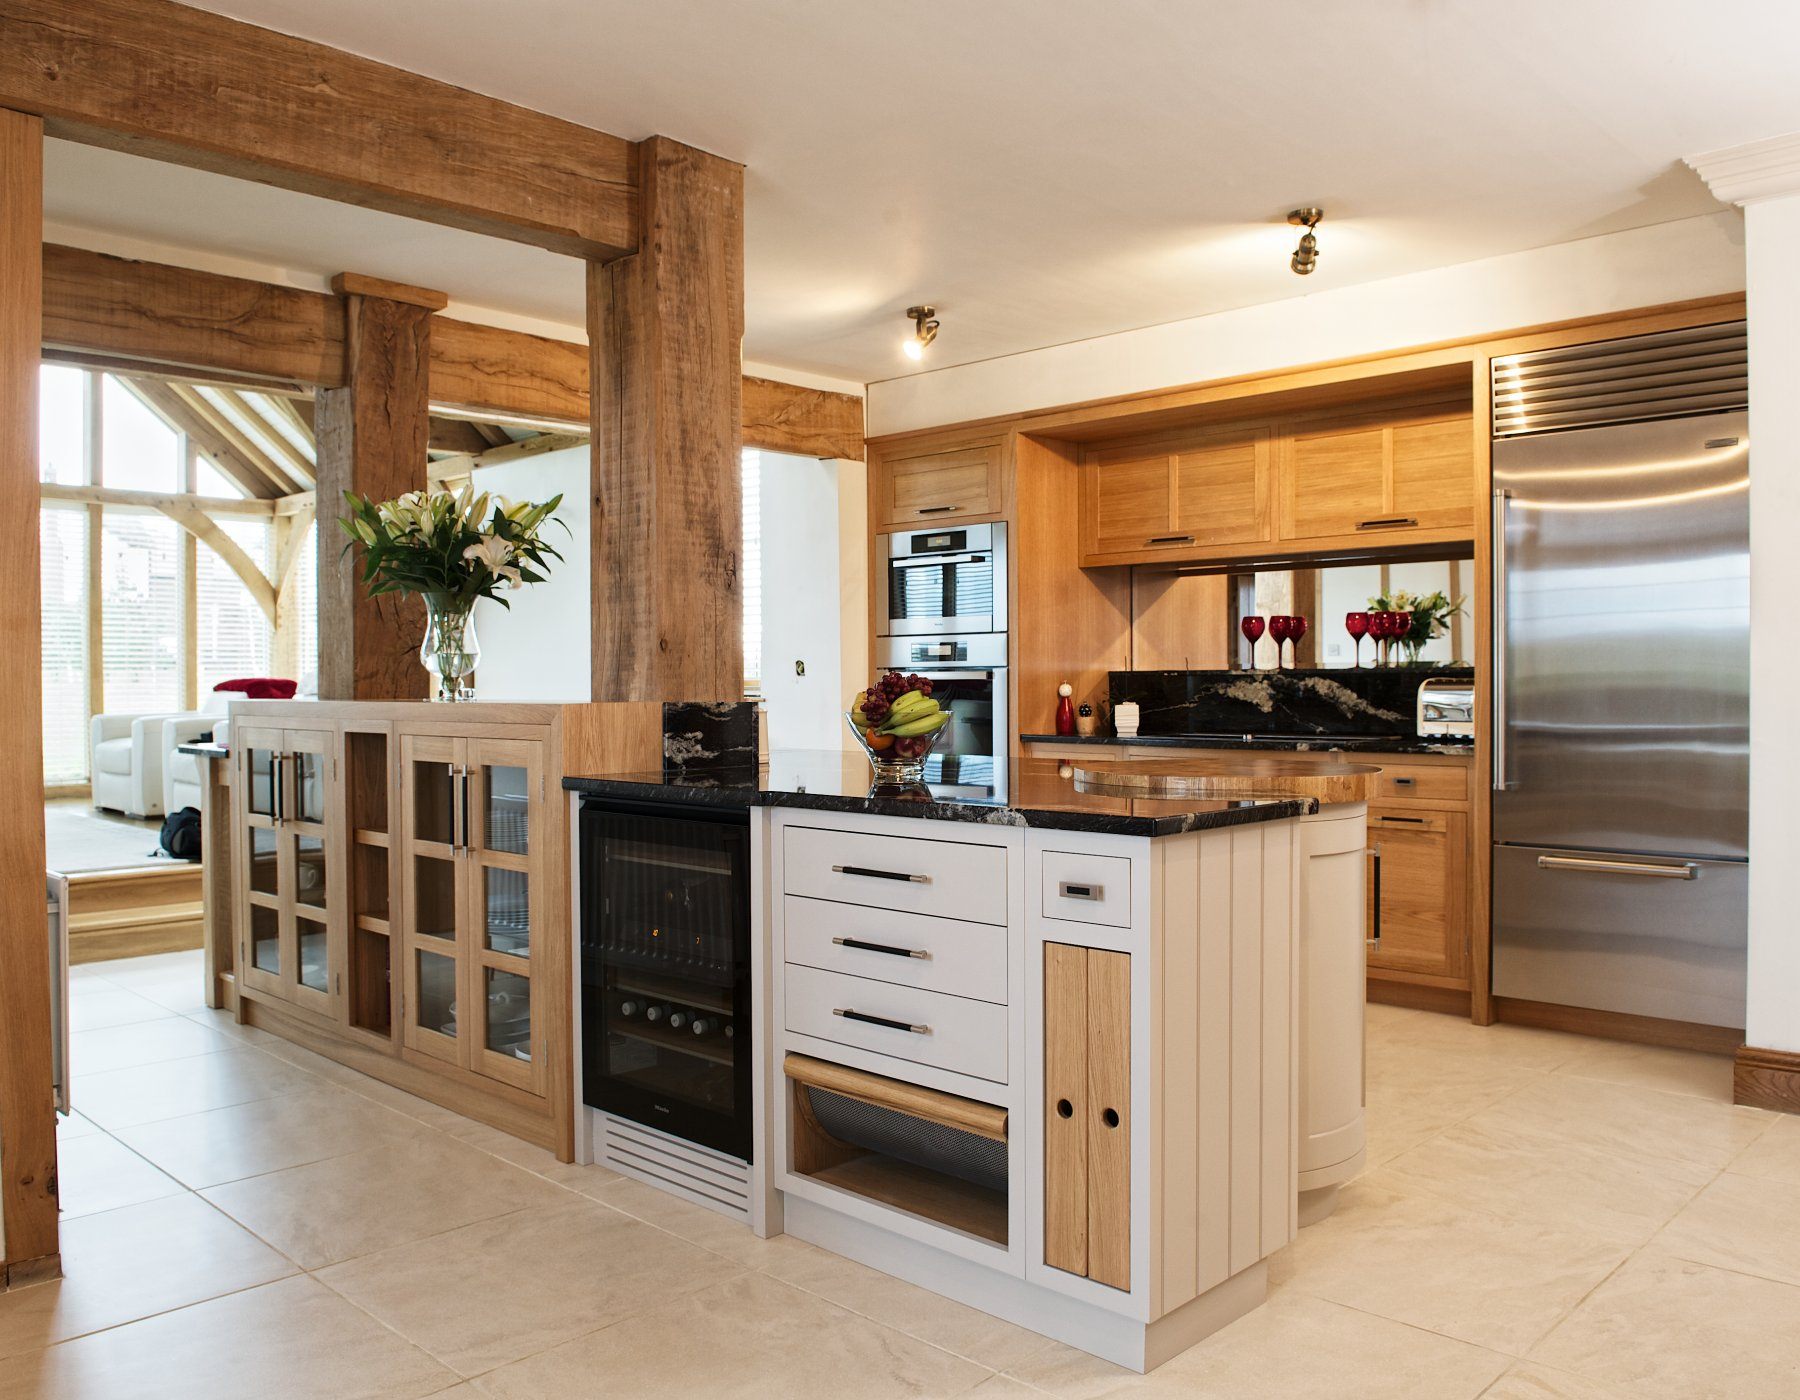 Bespoke Kitchen Greg S Bespoke Kitchens About Us Bespoke Kitchens